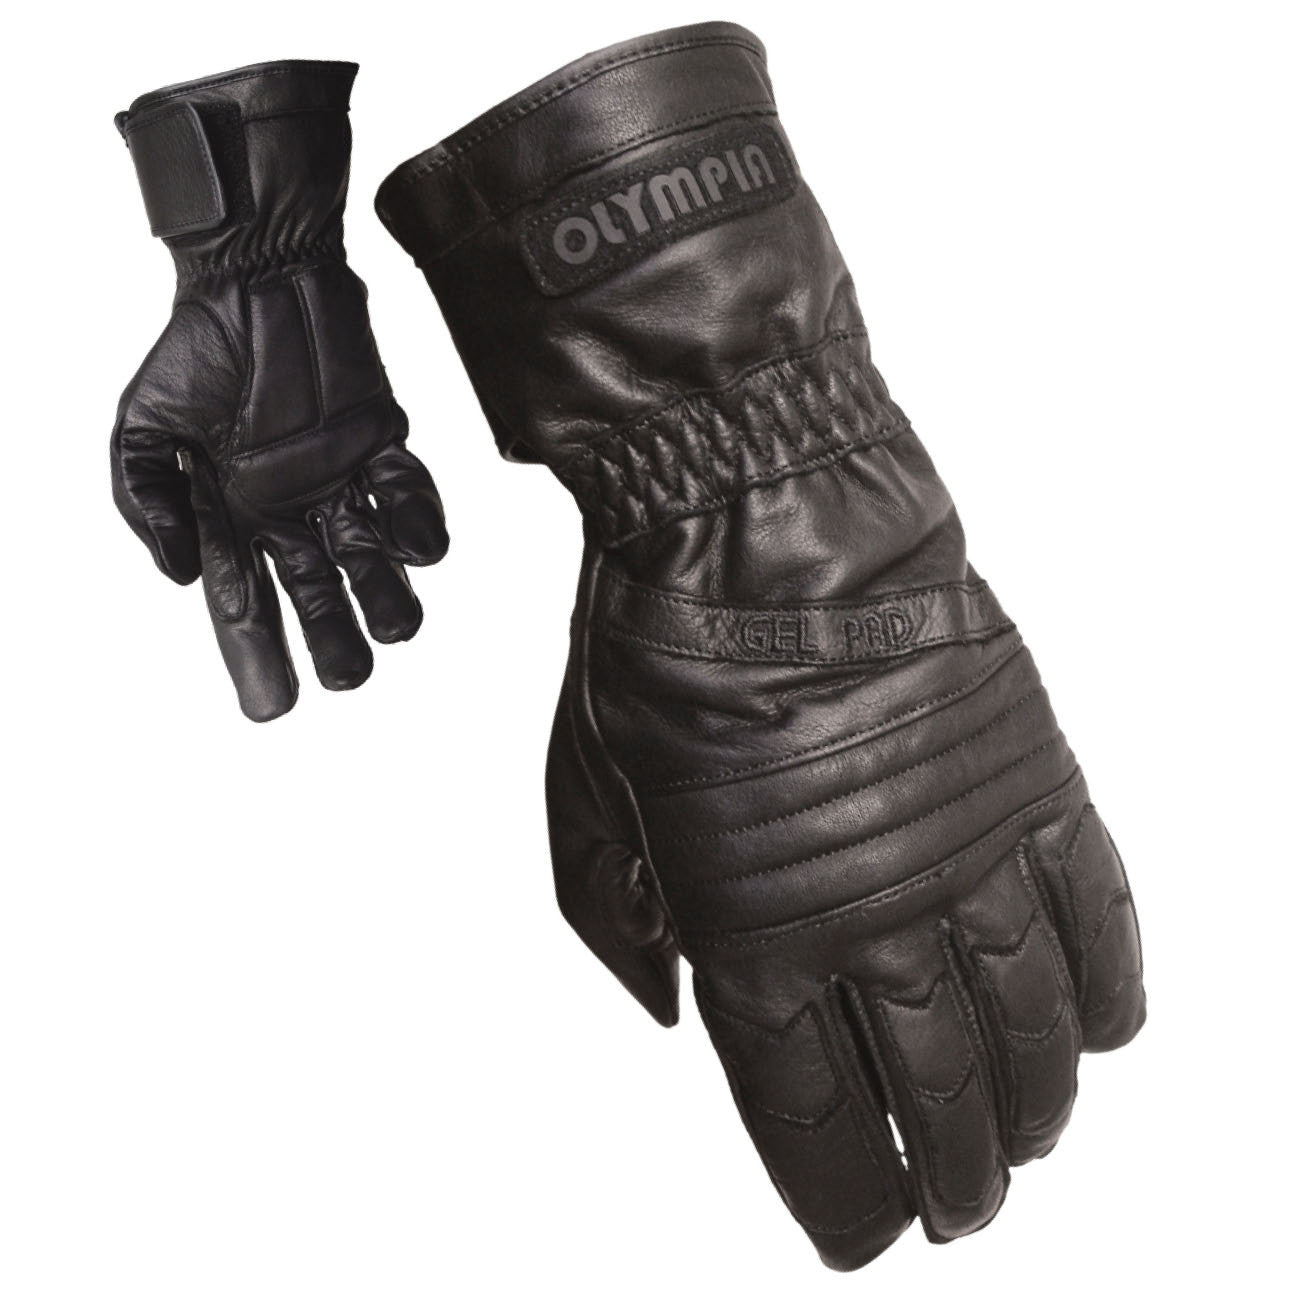 Motorcycle gloves large - Olympia Gloves 410 Gel Sport Gloves Product Image